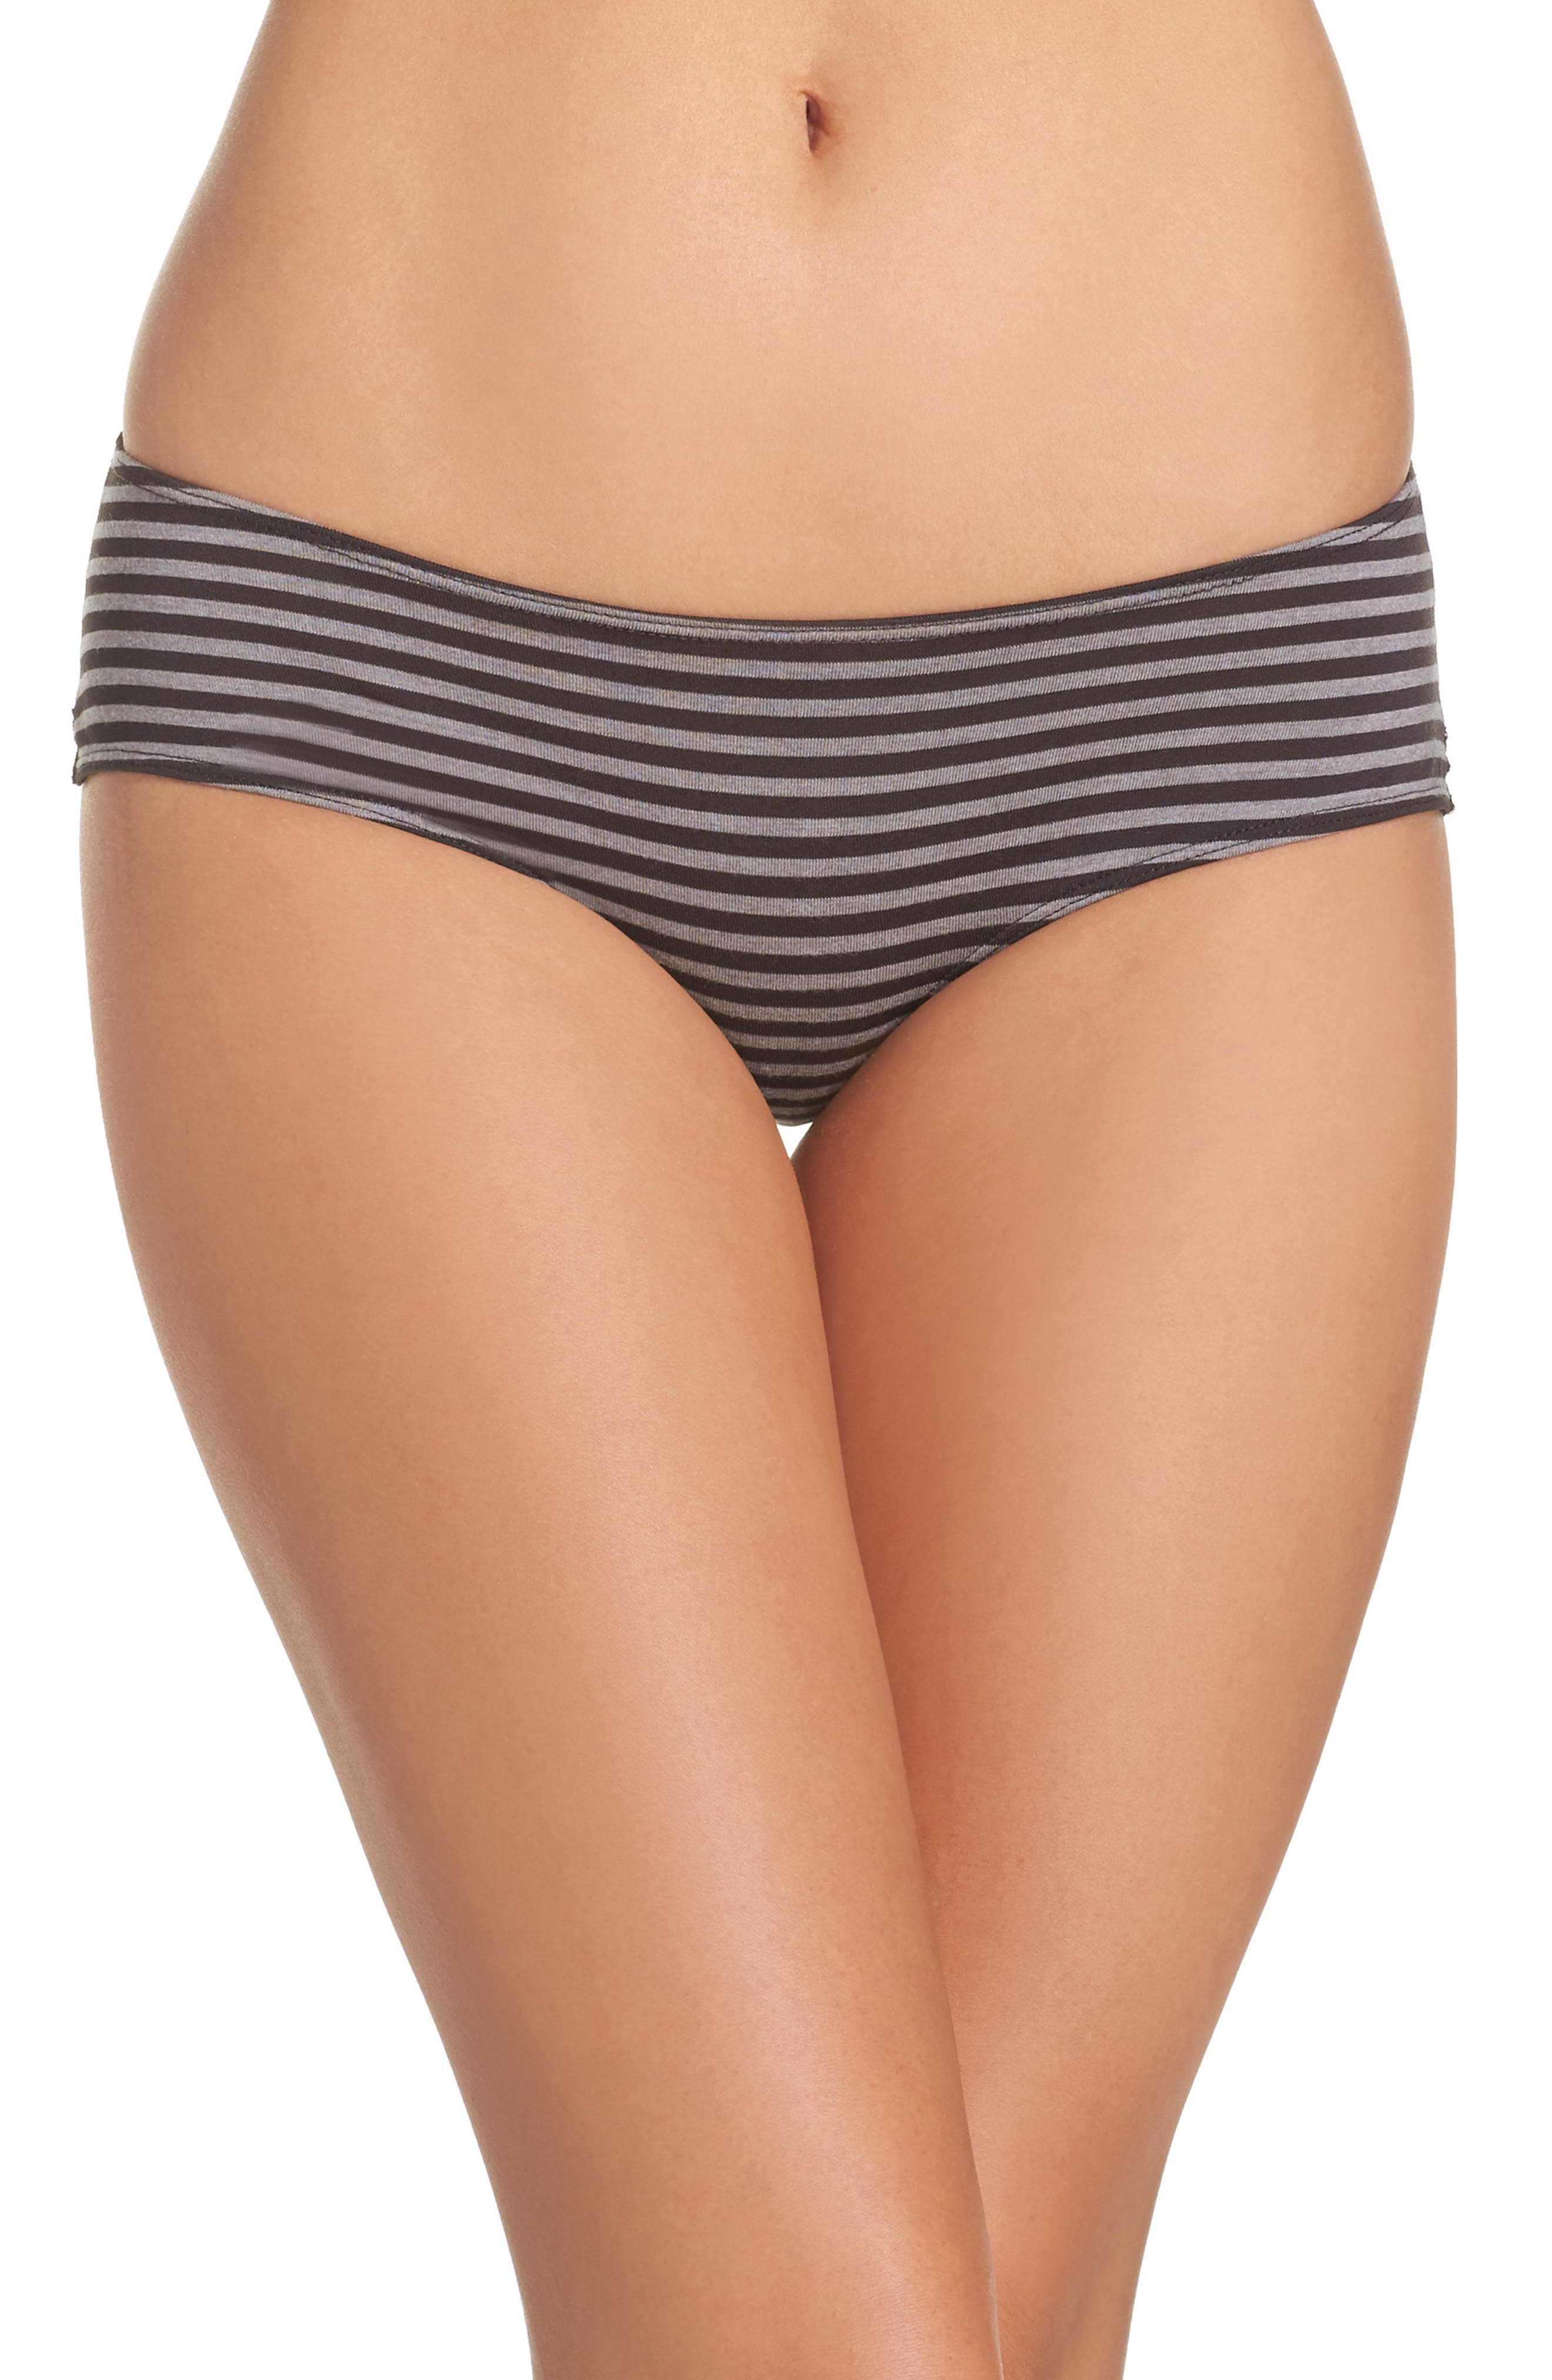 FREE PEOPLE Intimately FP Started Something Panties